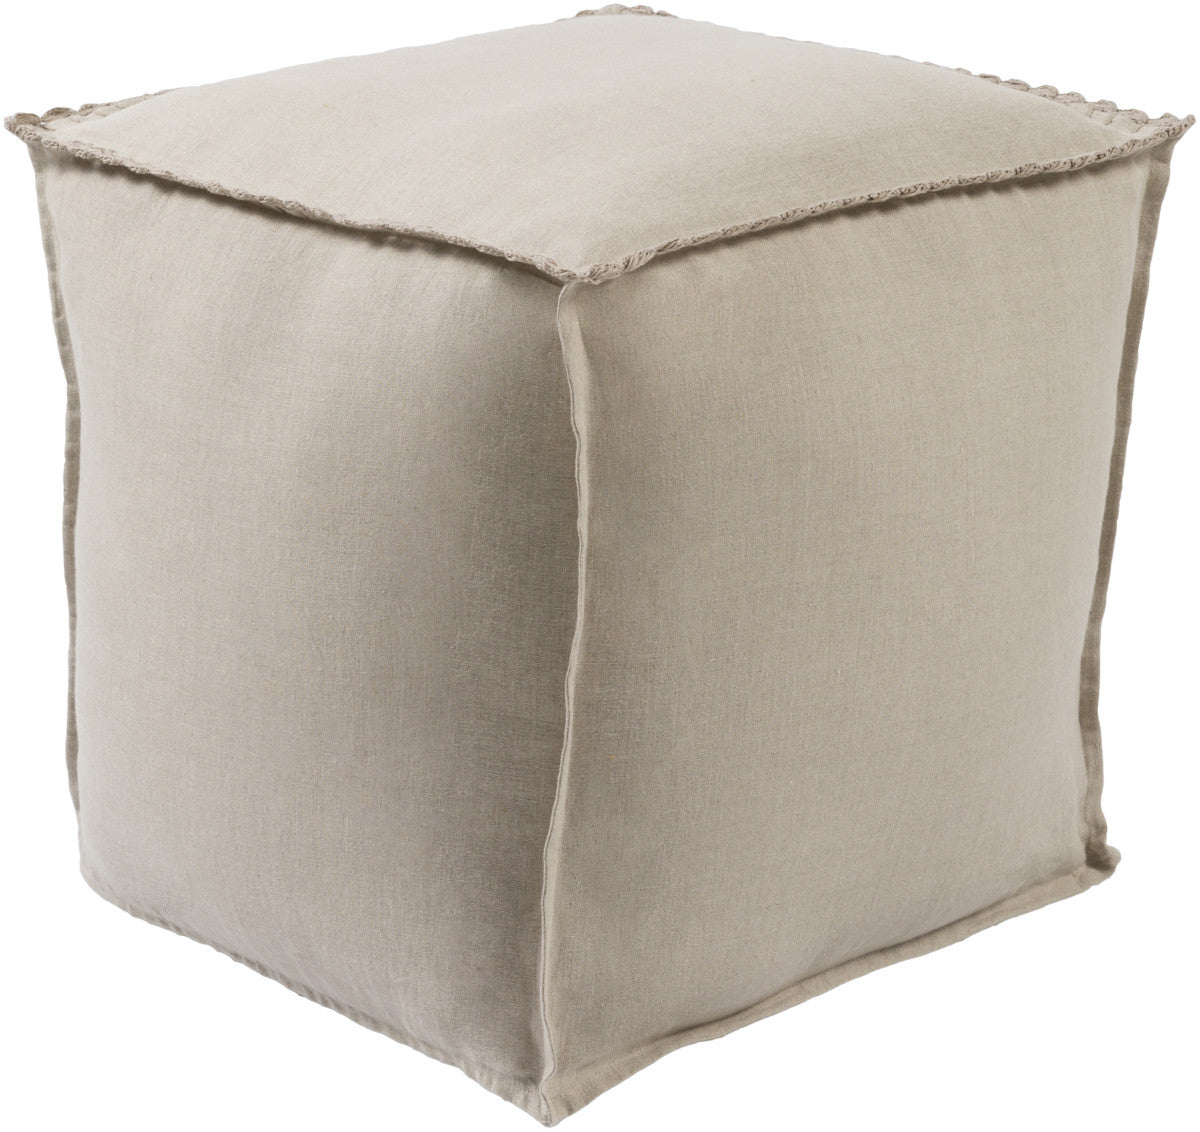 Surya Evelyn EVPF-006 Pouf